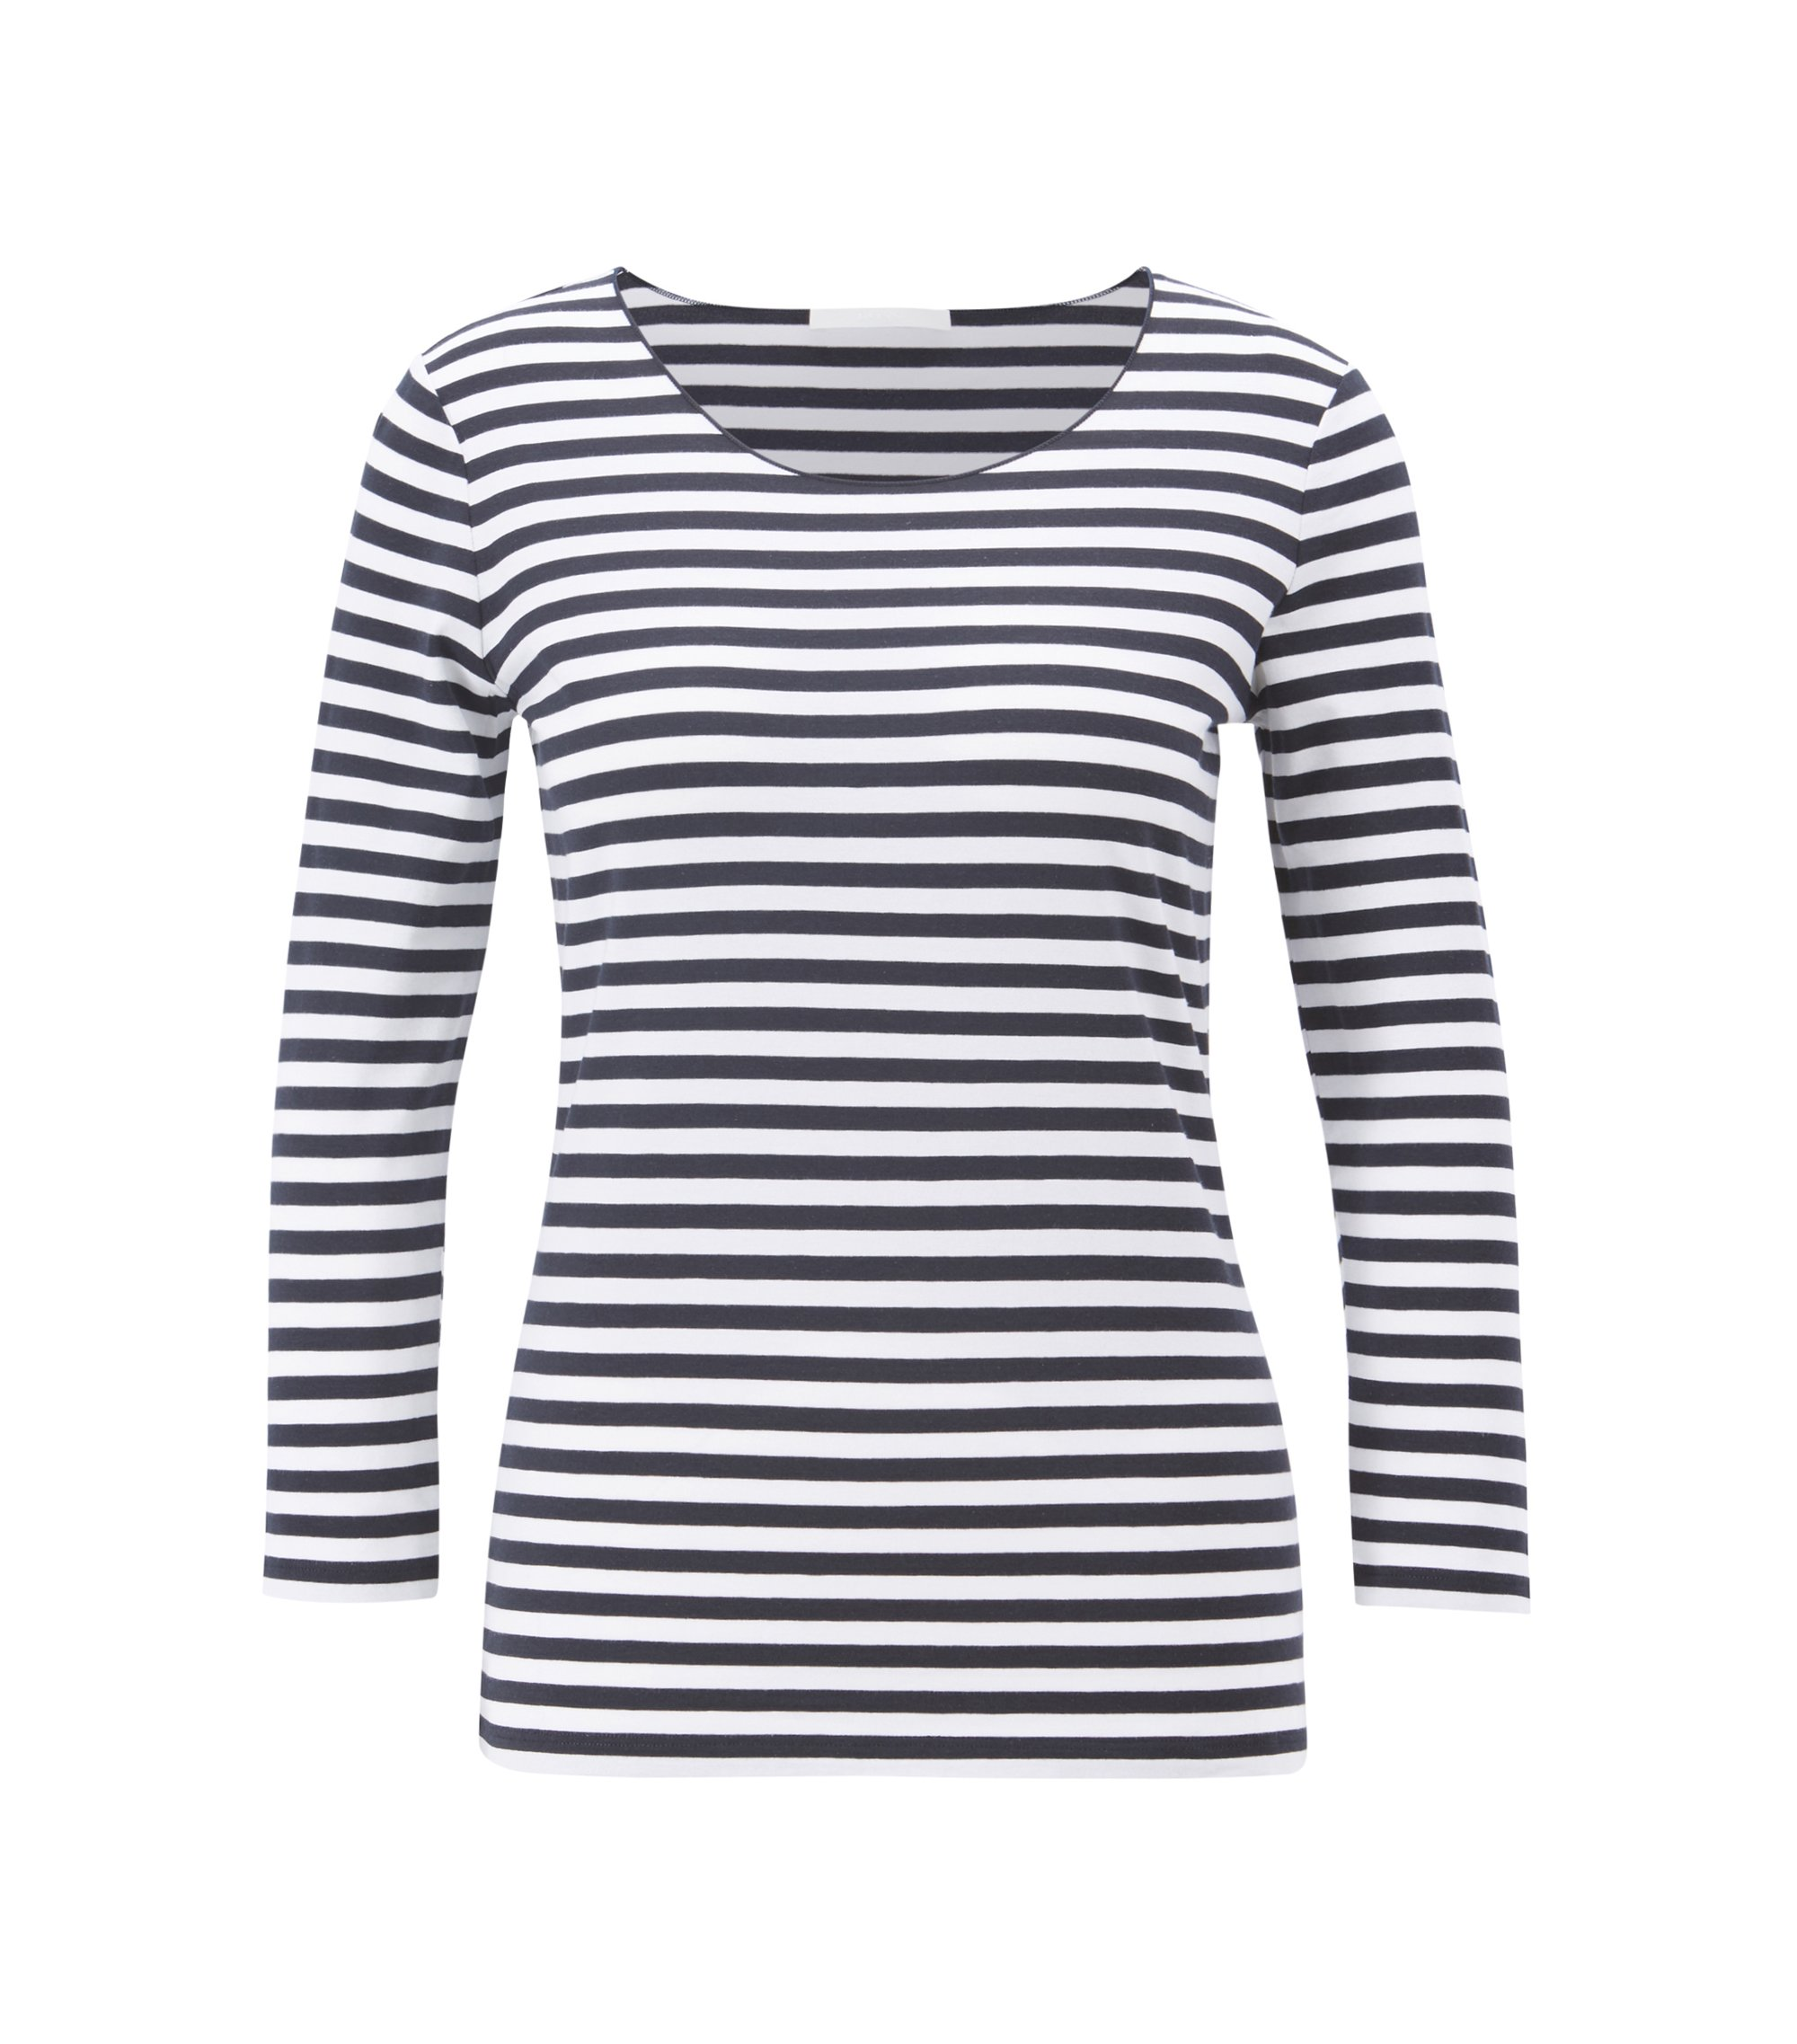 Breton-stripe jersey top with overlock-seam neckline, Patterned